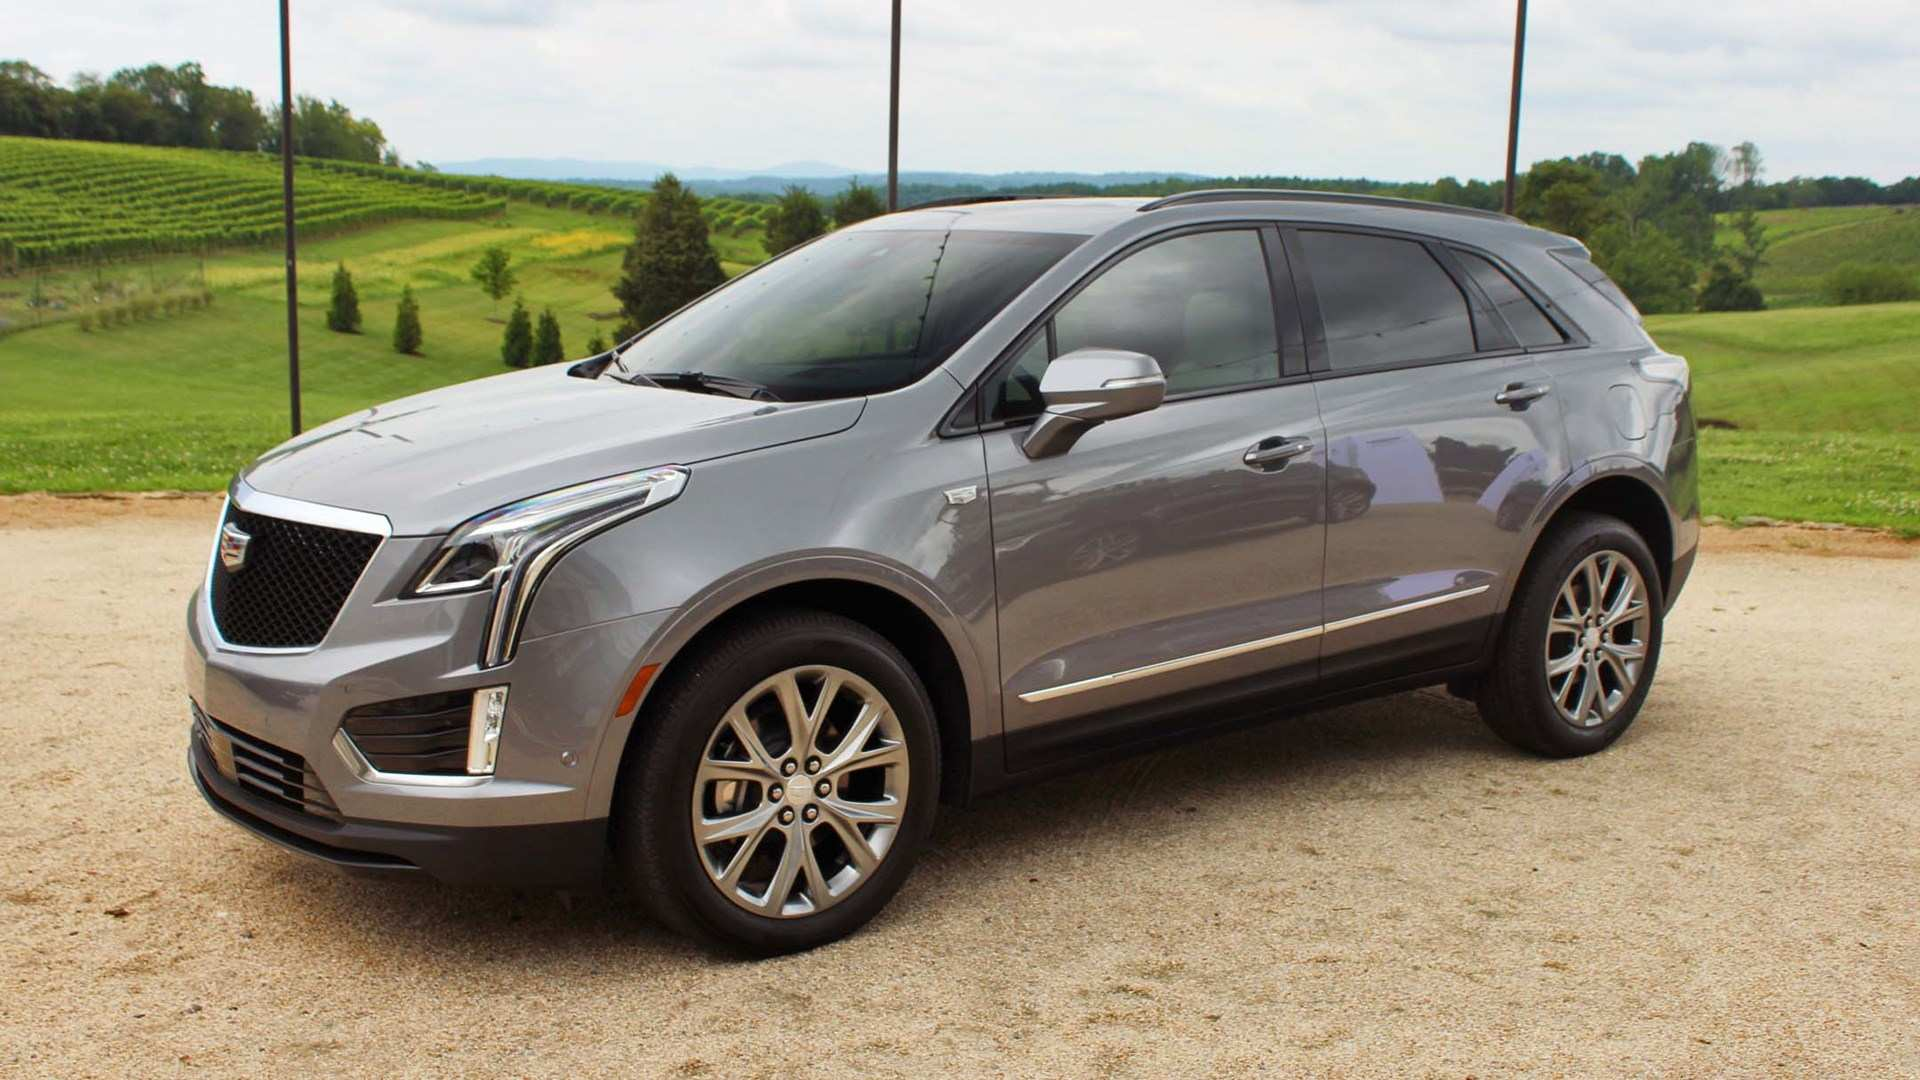 47 New 2020 Cadillac Xt5 Review Specs with 2020 Cadillac Xt5 Review